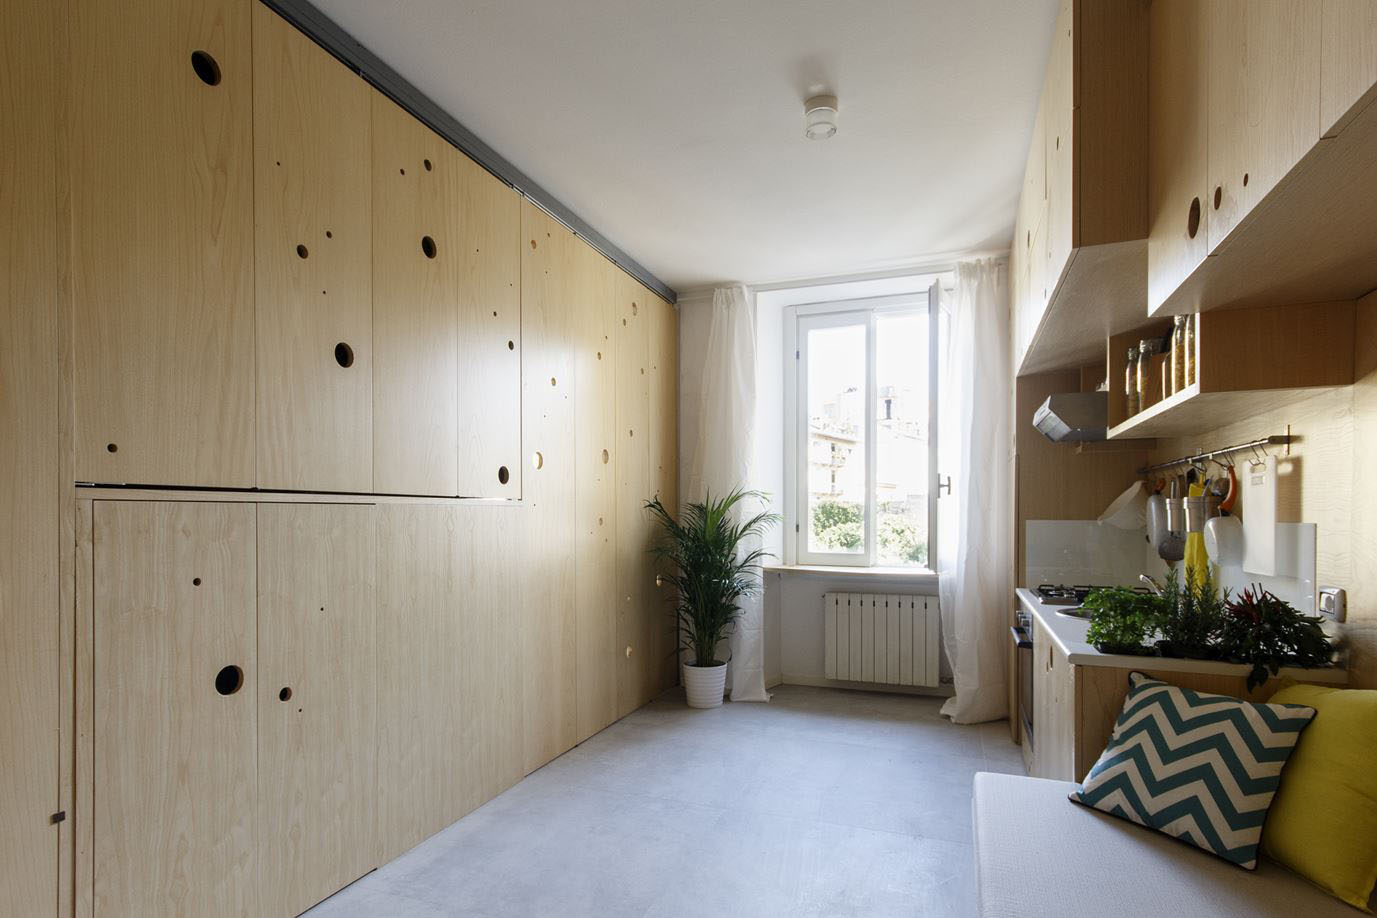 Studio Apartment Partition Small Studio Apartment With A Clever Movable Partition System